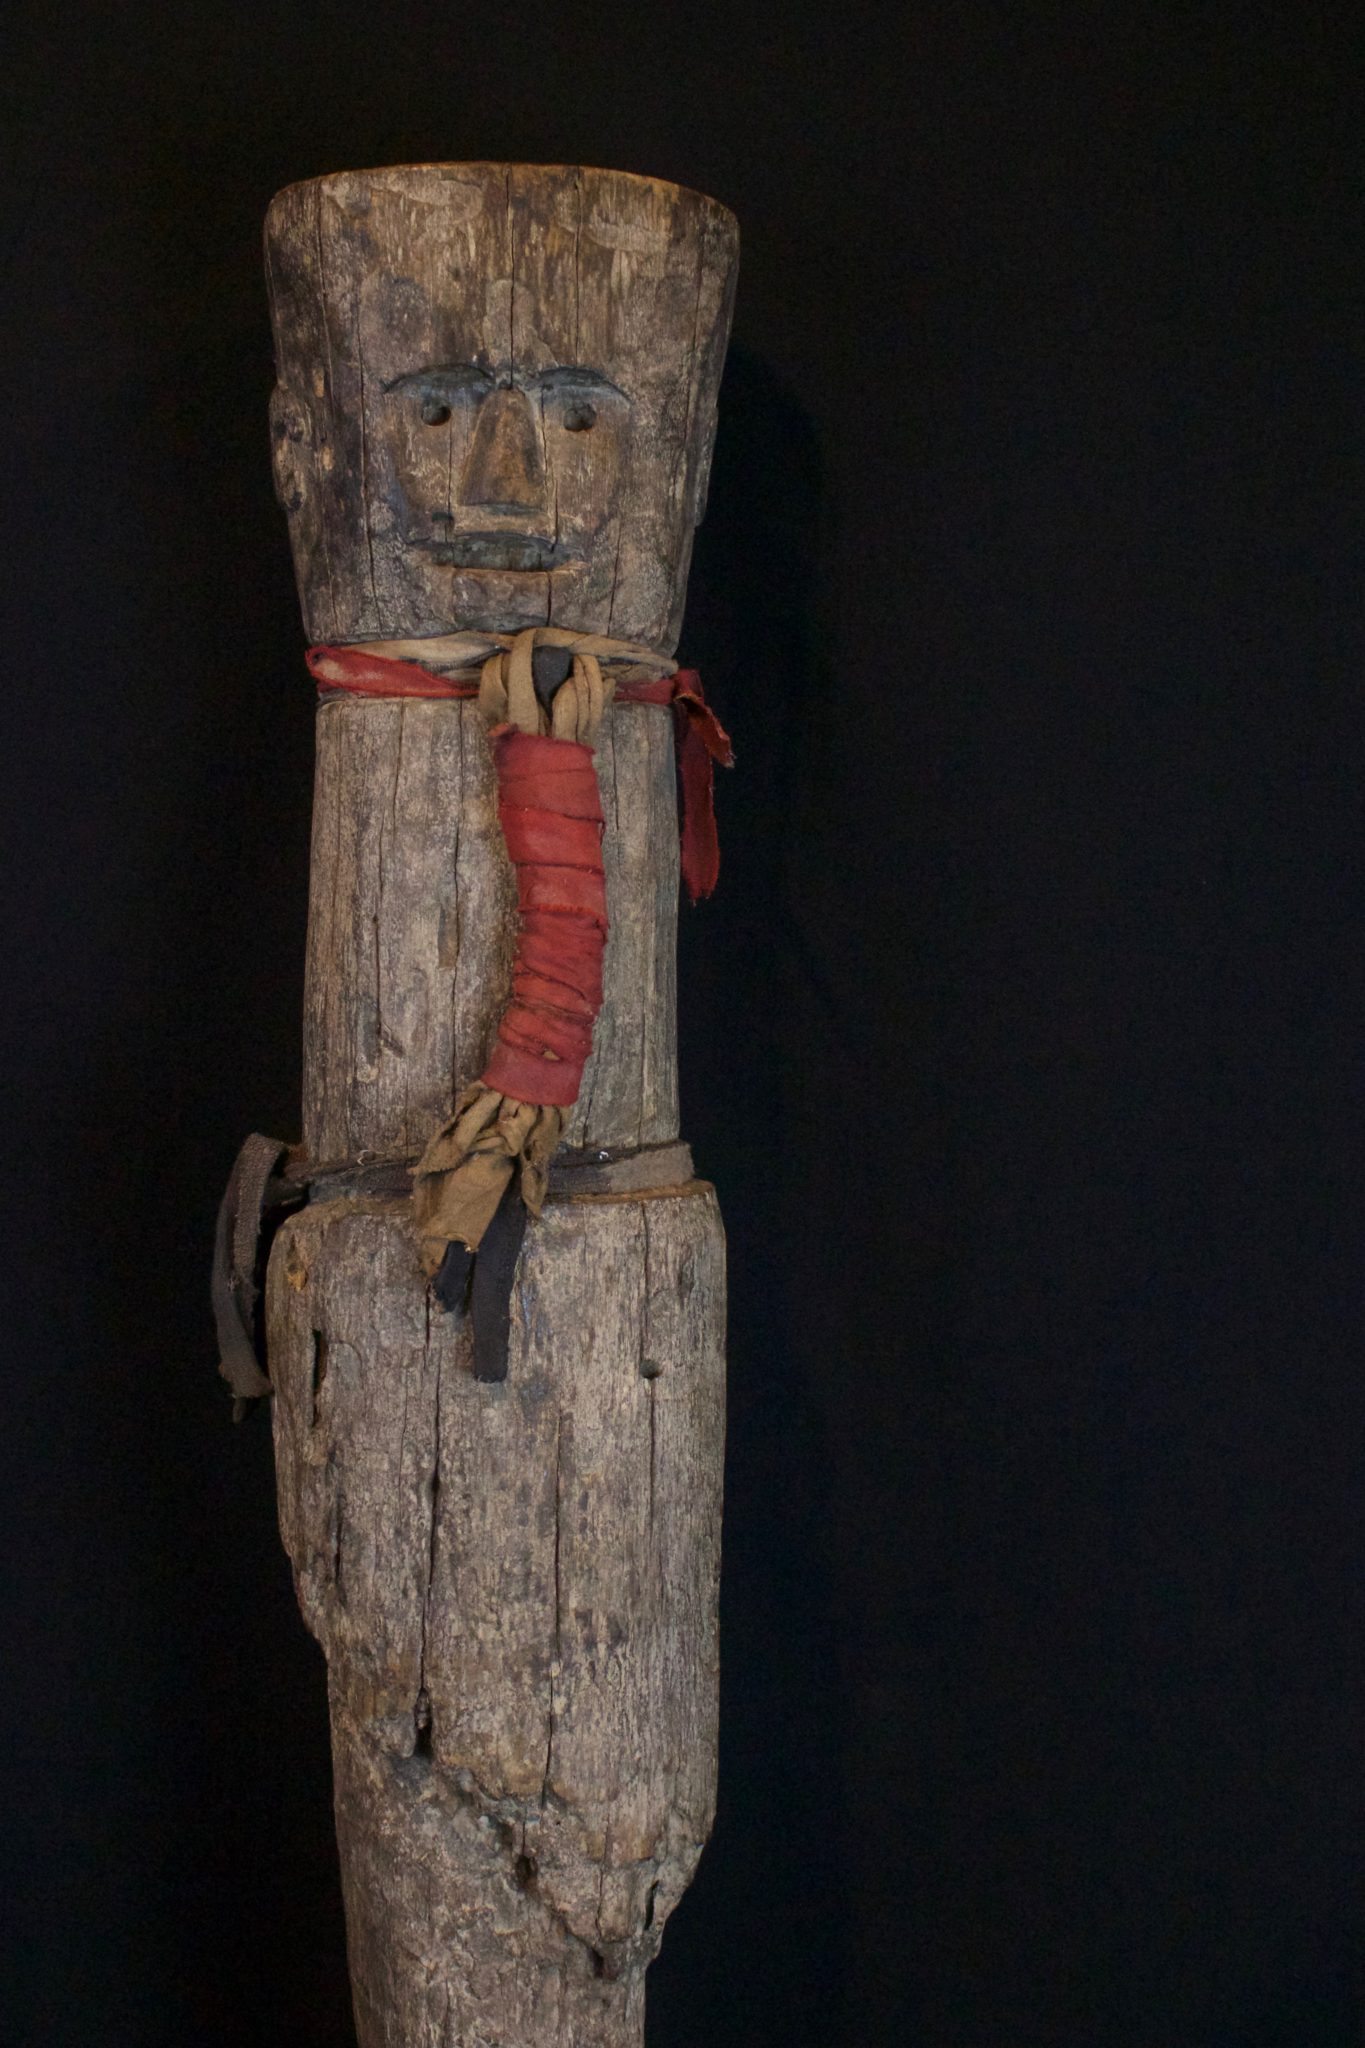 """Shaman Protector Figure, Kalimantan, Borneo, Indonesia, Dayak tribe, Early 20th c, Wood, cloth straps. Kept in the shaman's home for his protection. 28"""" x 6"""" x 5 ½"""", $1900."""